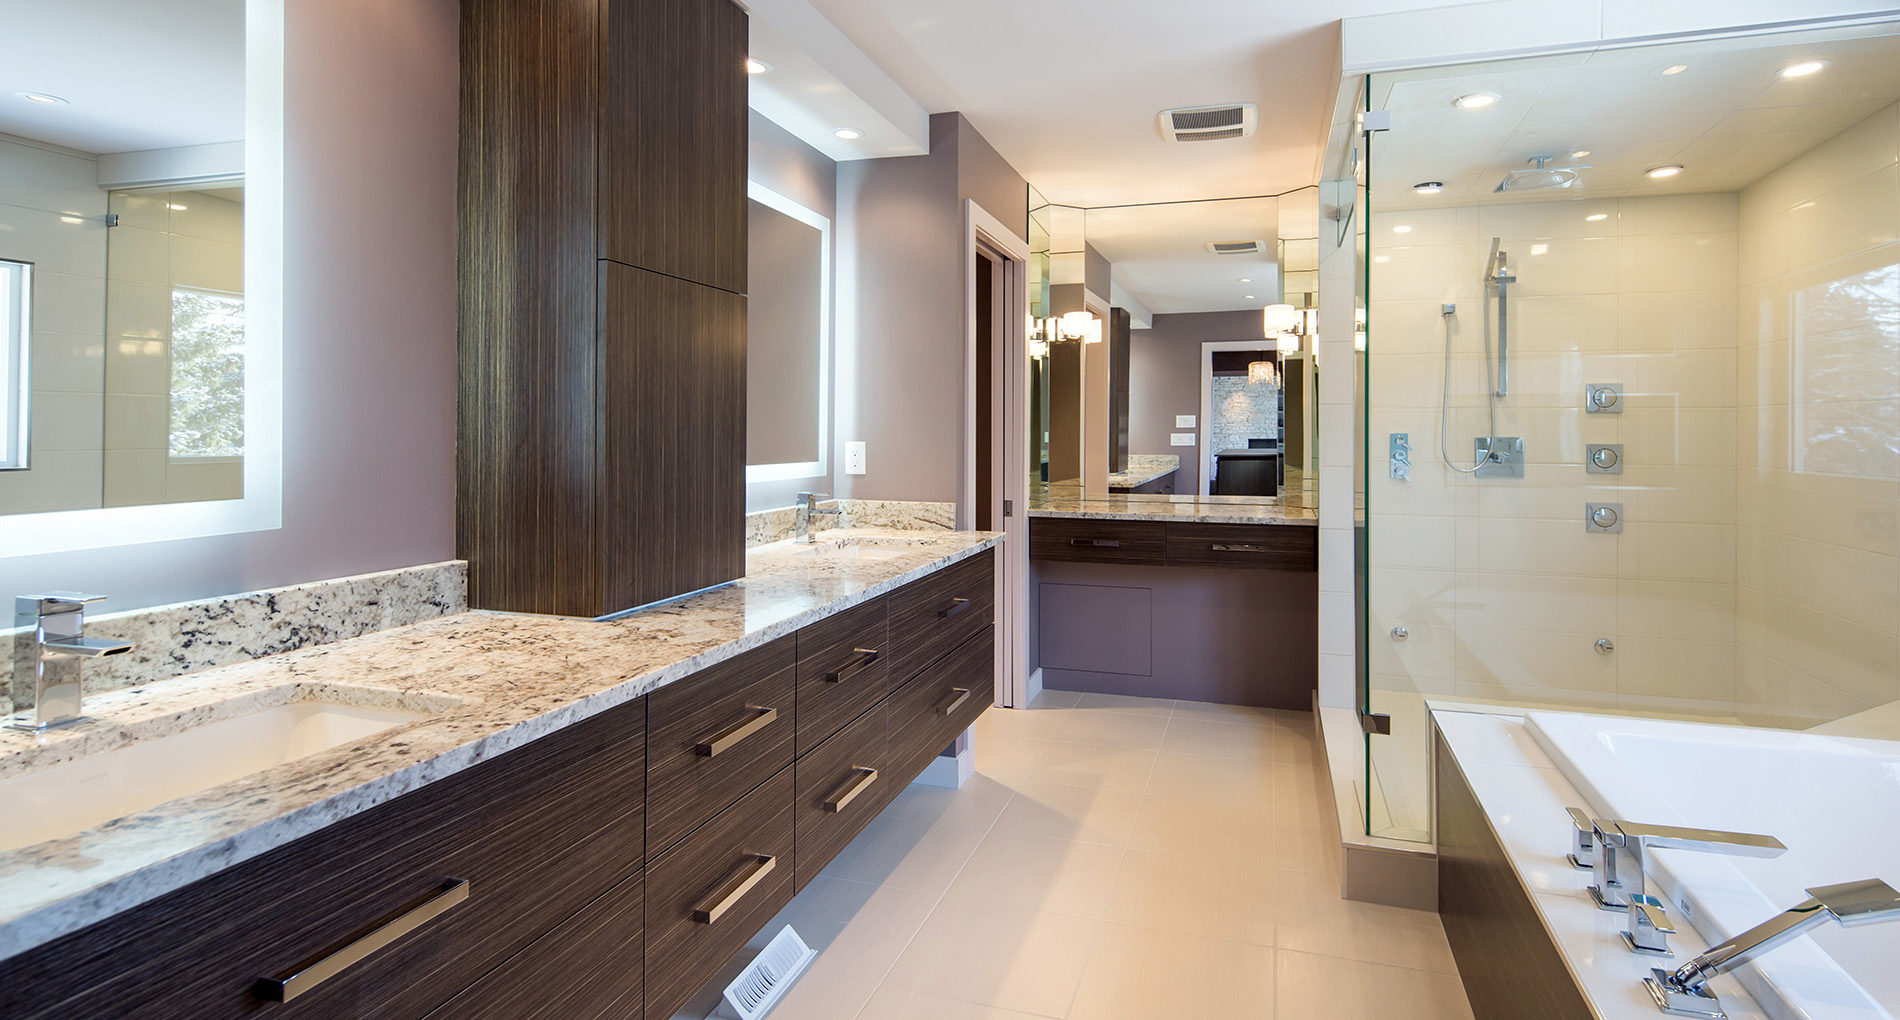 Bathroom Renovations Design In Calgary Alair Homes Calgary